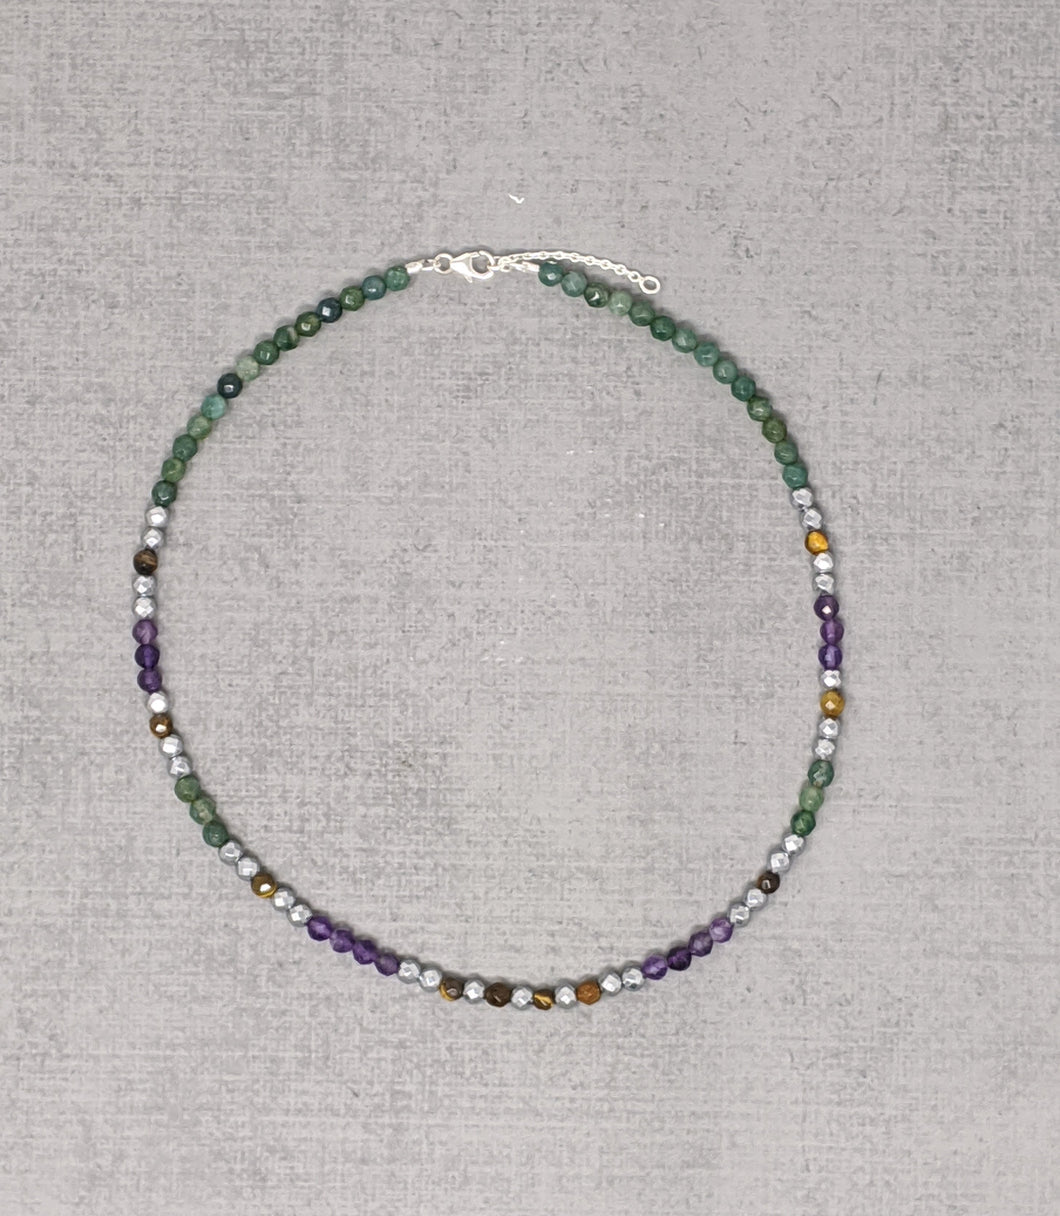 sterling silver necklace with faceted moss agate, amethyst, tiger's eye, and hematite stones.